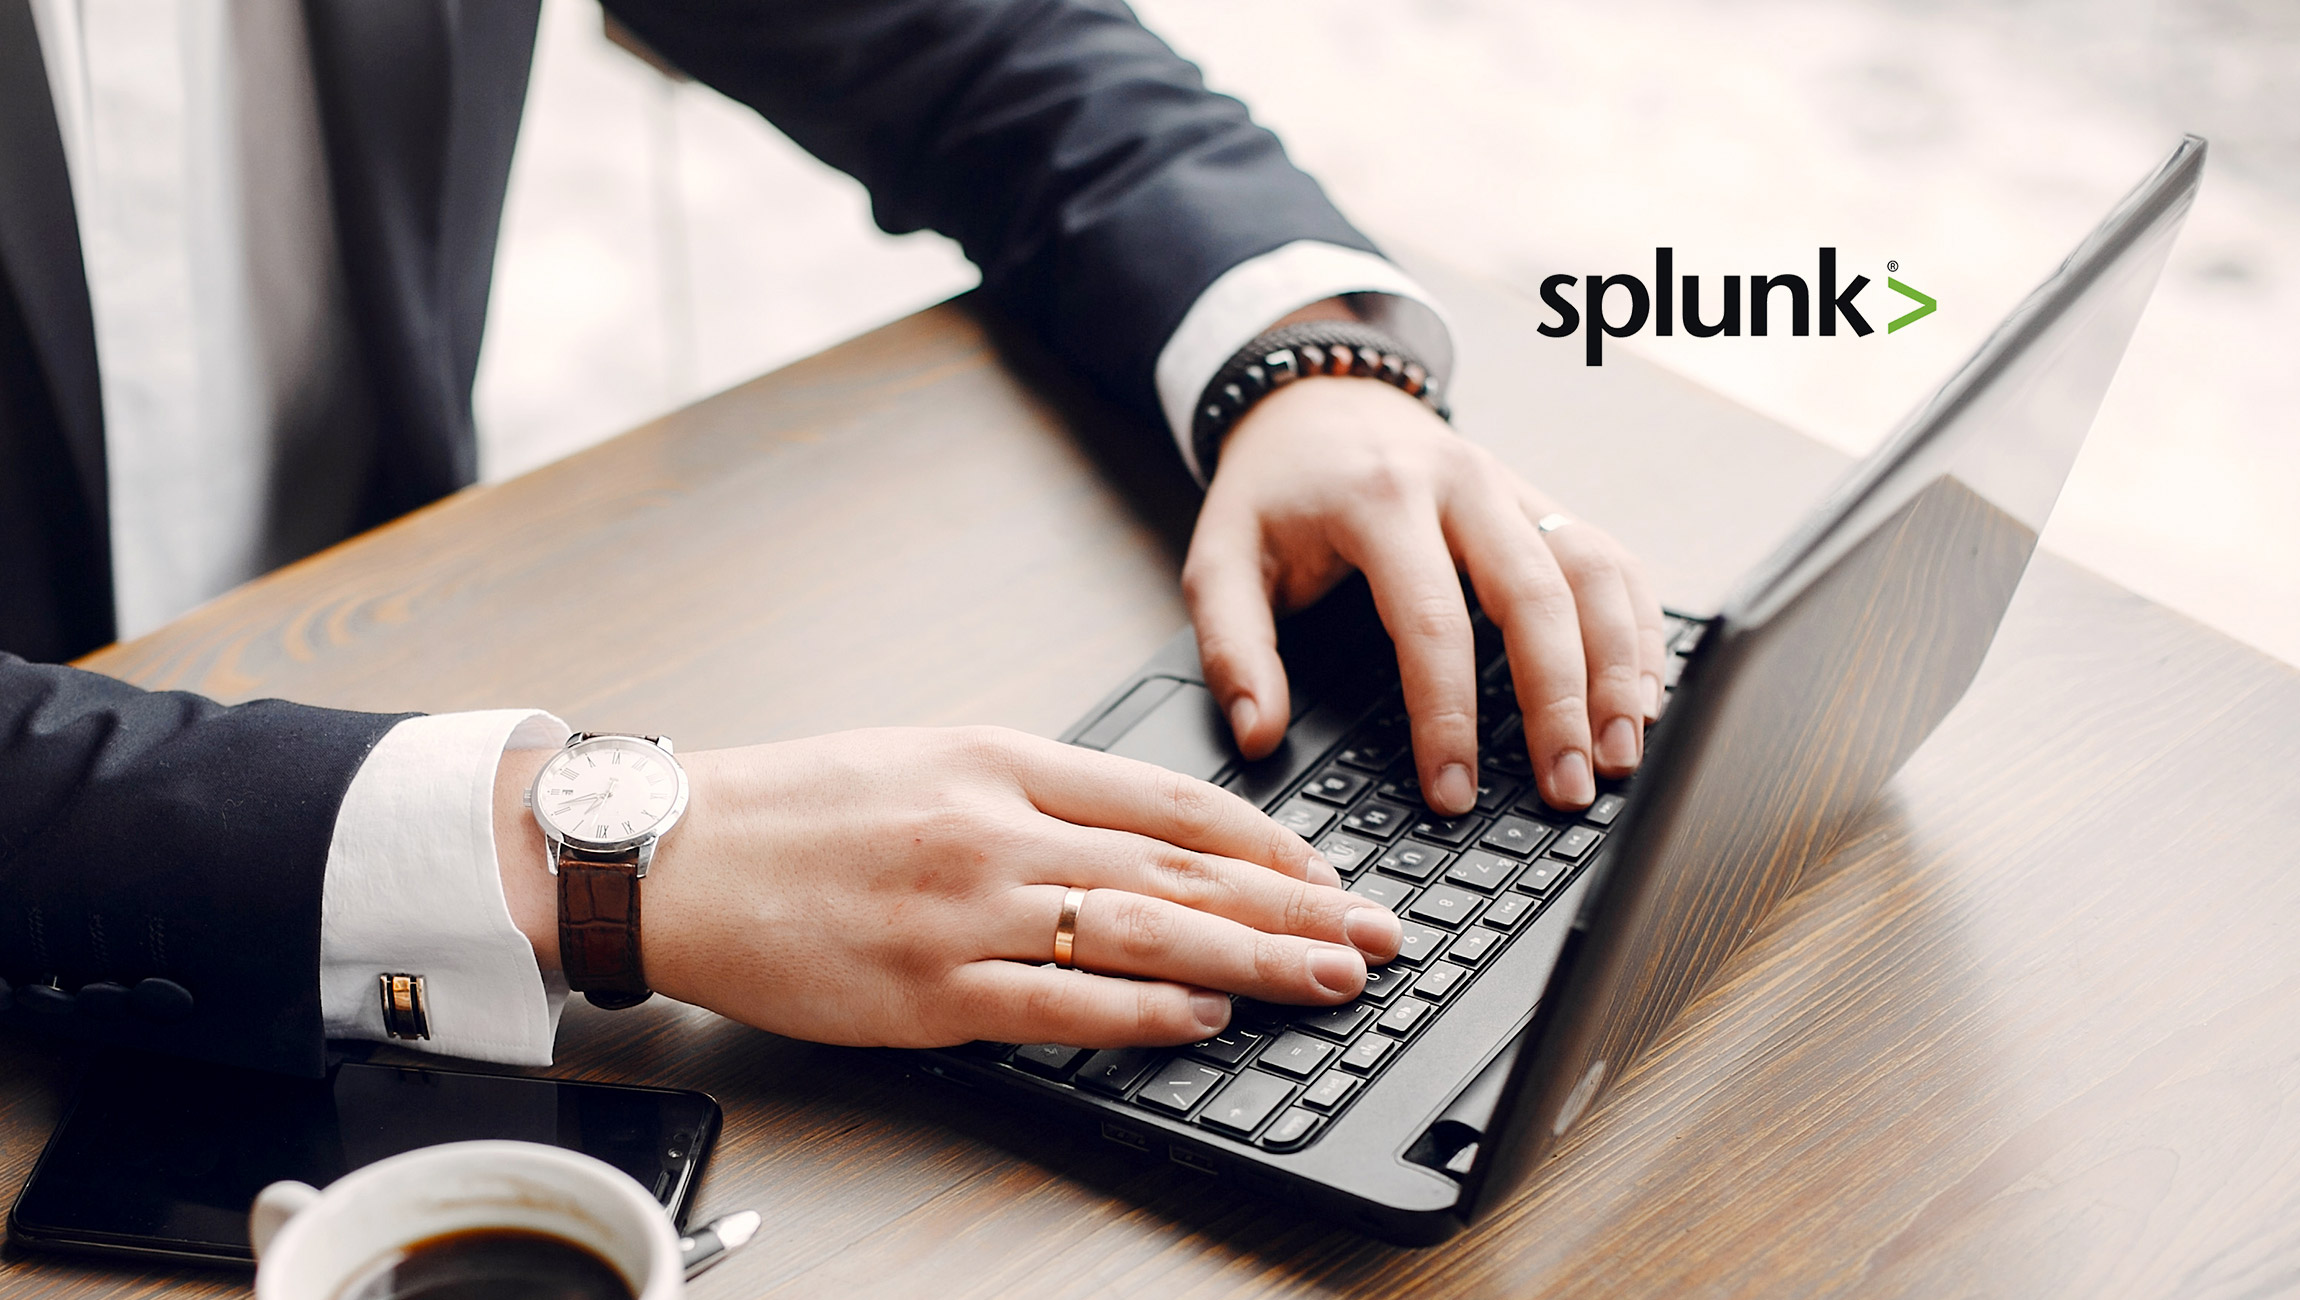 Splunk Expands Data Access with Splunk Connected Experiences and Splunk Business Flow